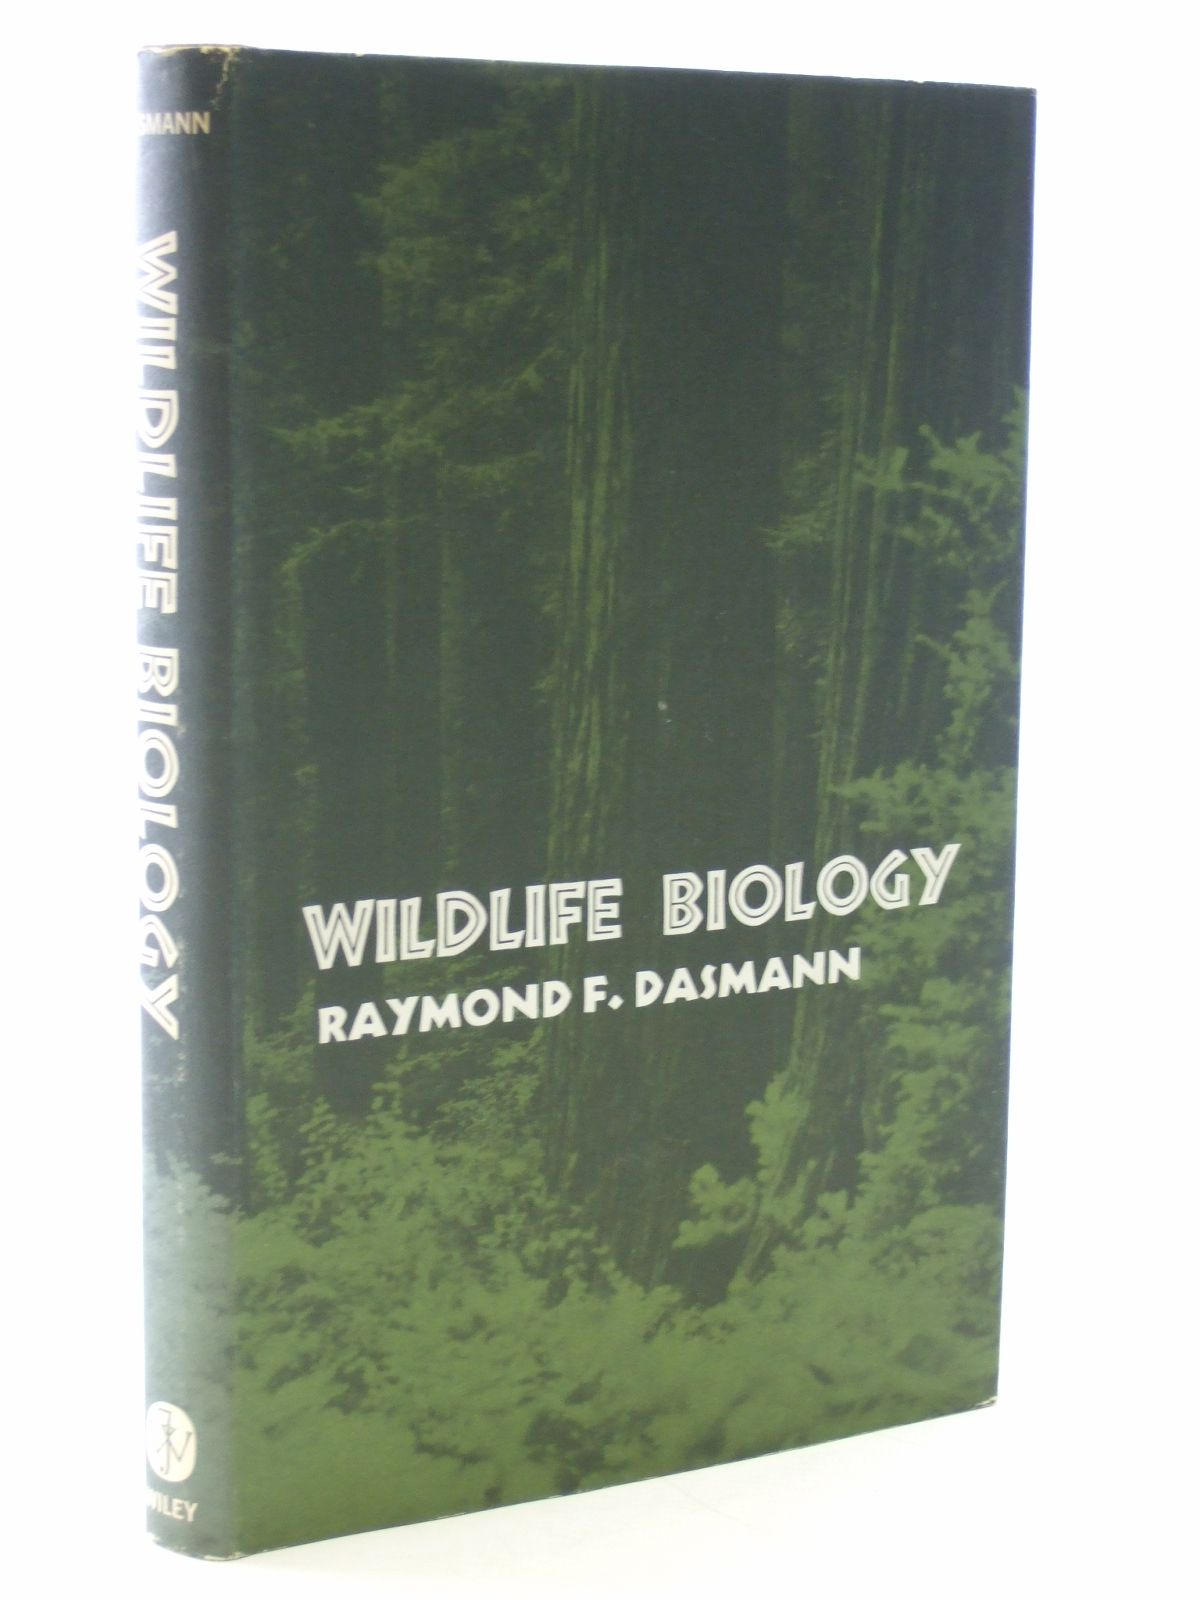 Photo of WILDLIFE BIOLOGY written by Dasmann, Raymond F. published by John Wiley & Sons (STOCK CODE: 1602935)  for sale by Stella & Rose's Books